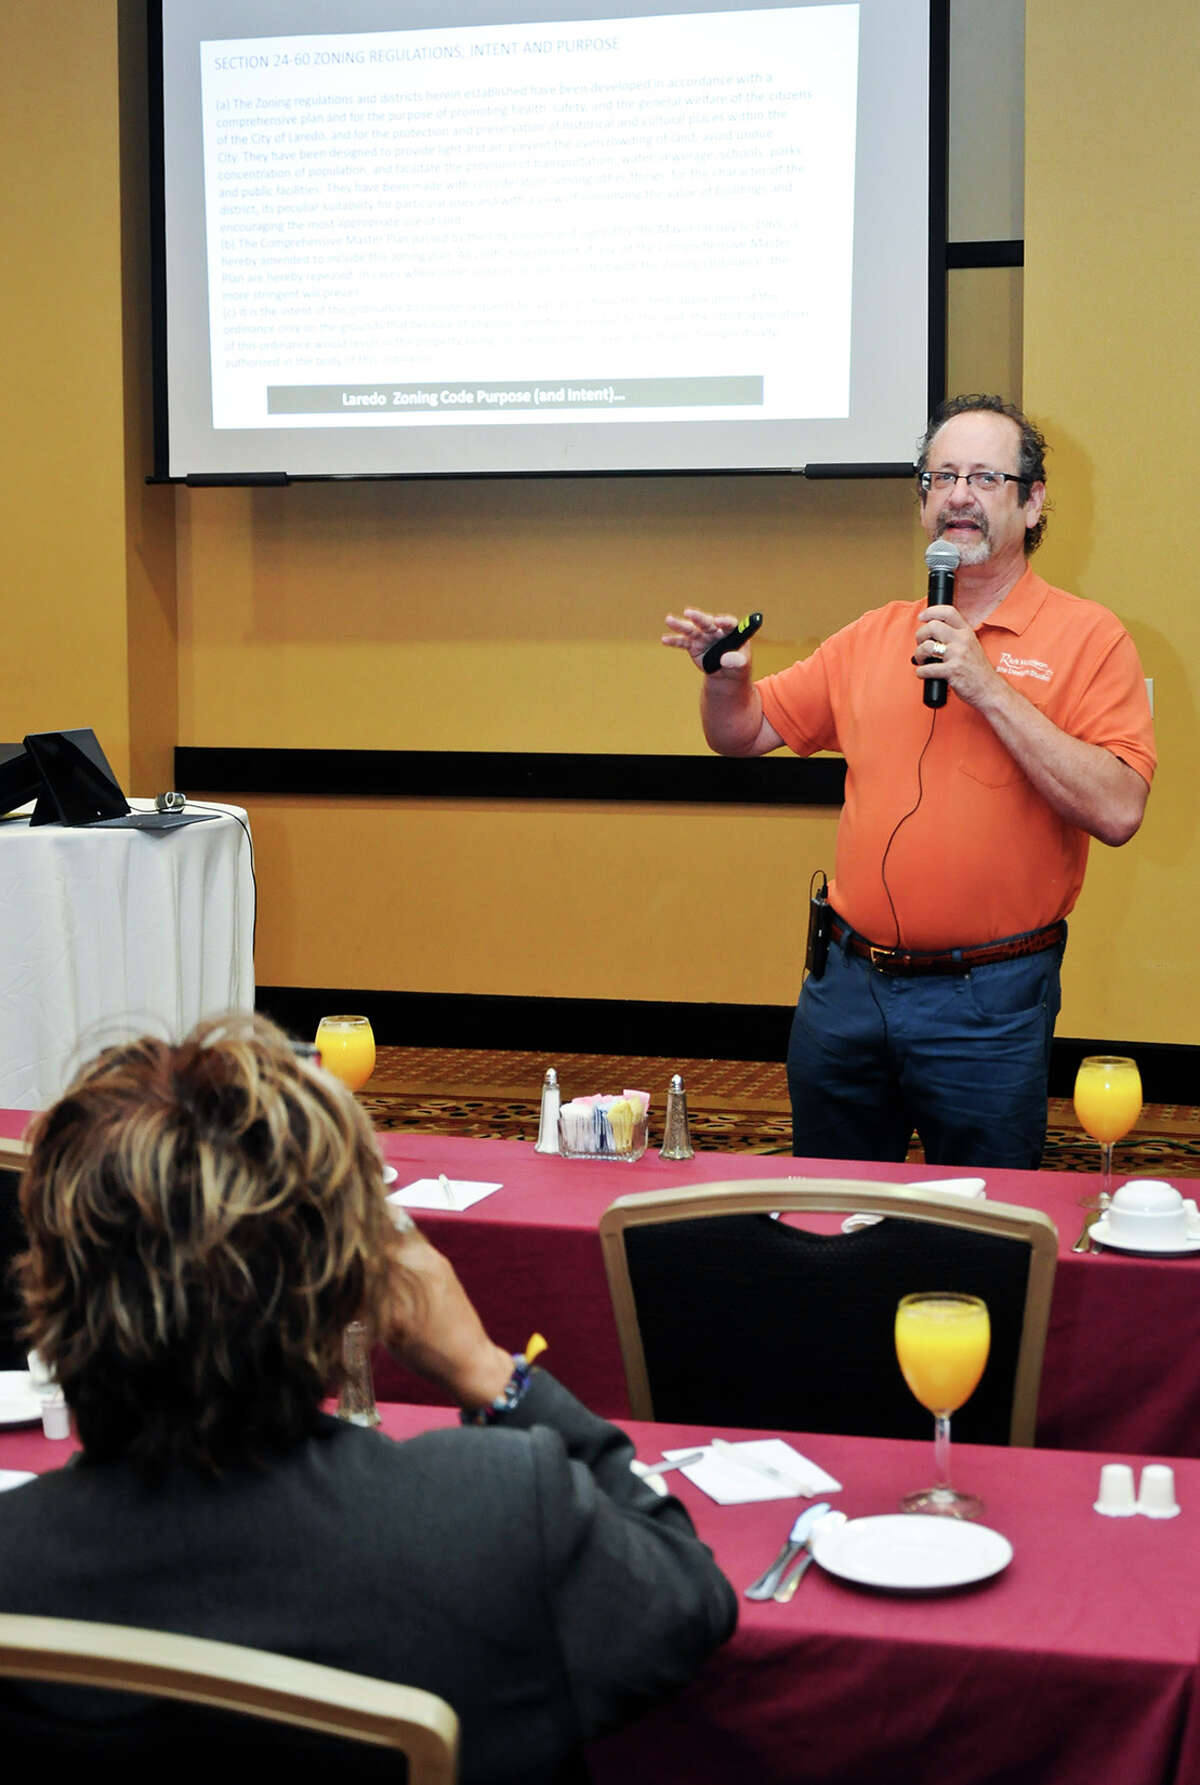 Rick Harrison speaks during the Coves & Winfield workshop Wednesday morning at Embassy Suites.